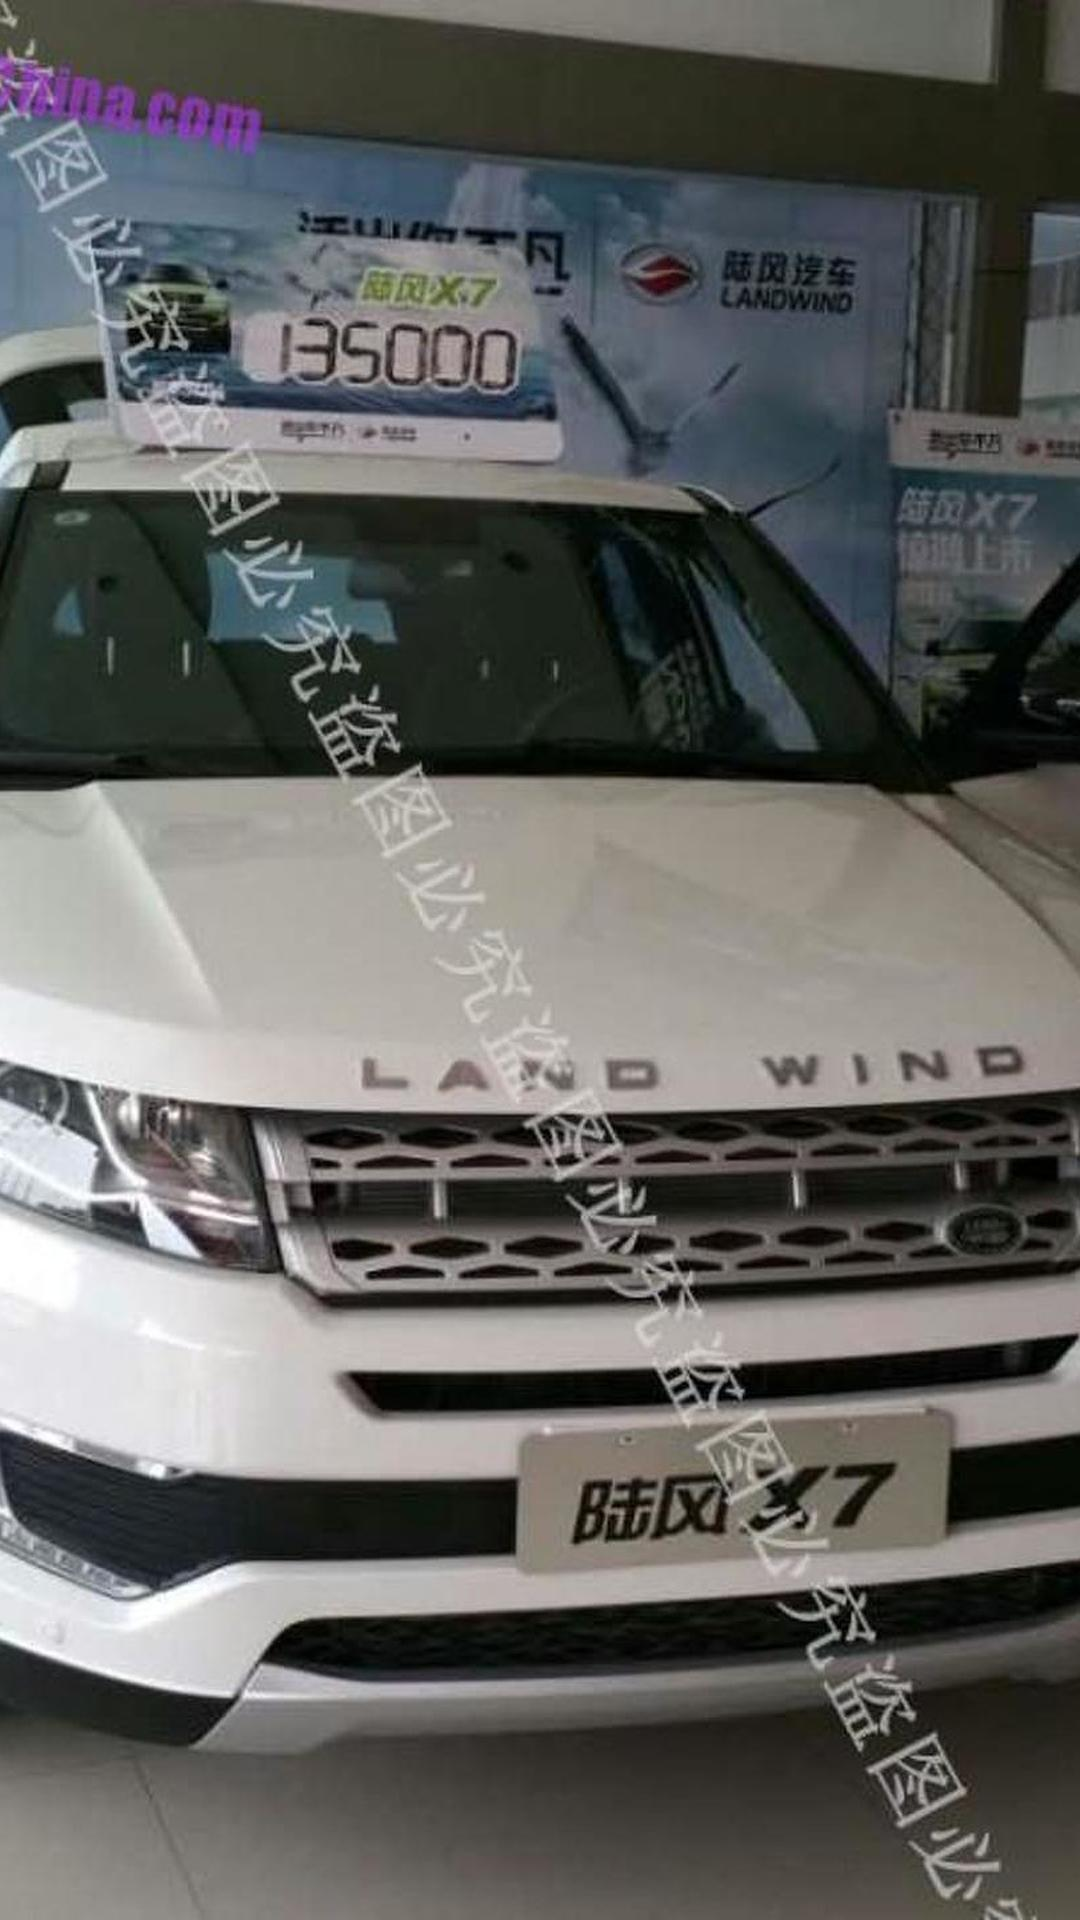 Landwind dealers now selling aftermarket Evoque-like grille and badges for X7